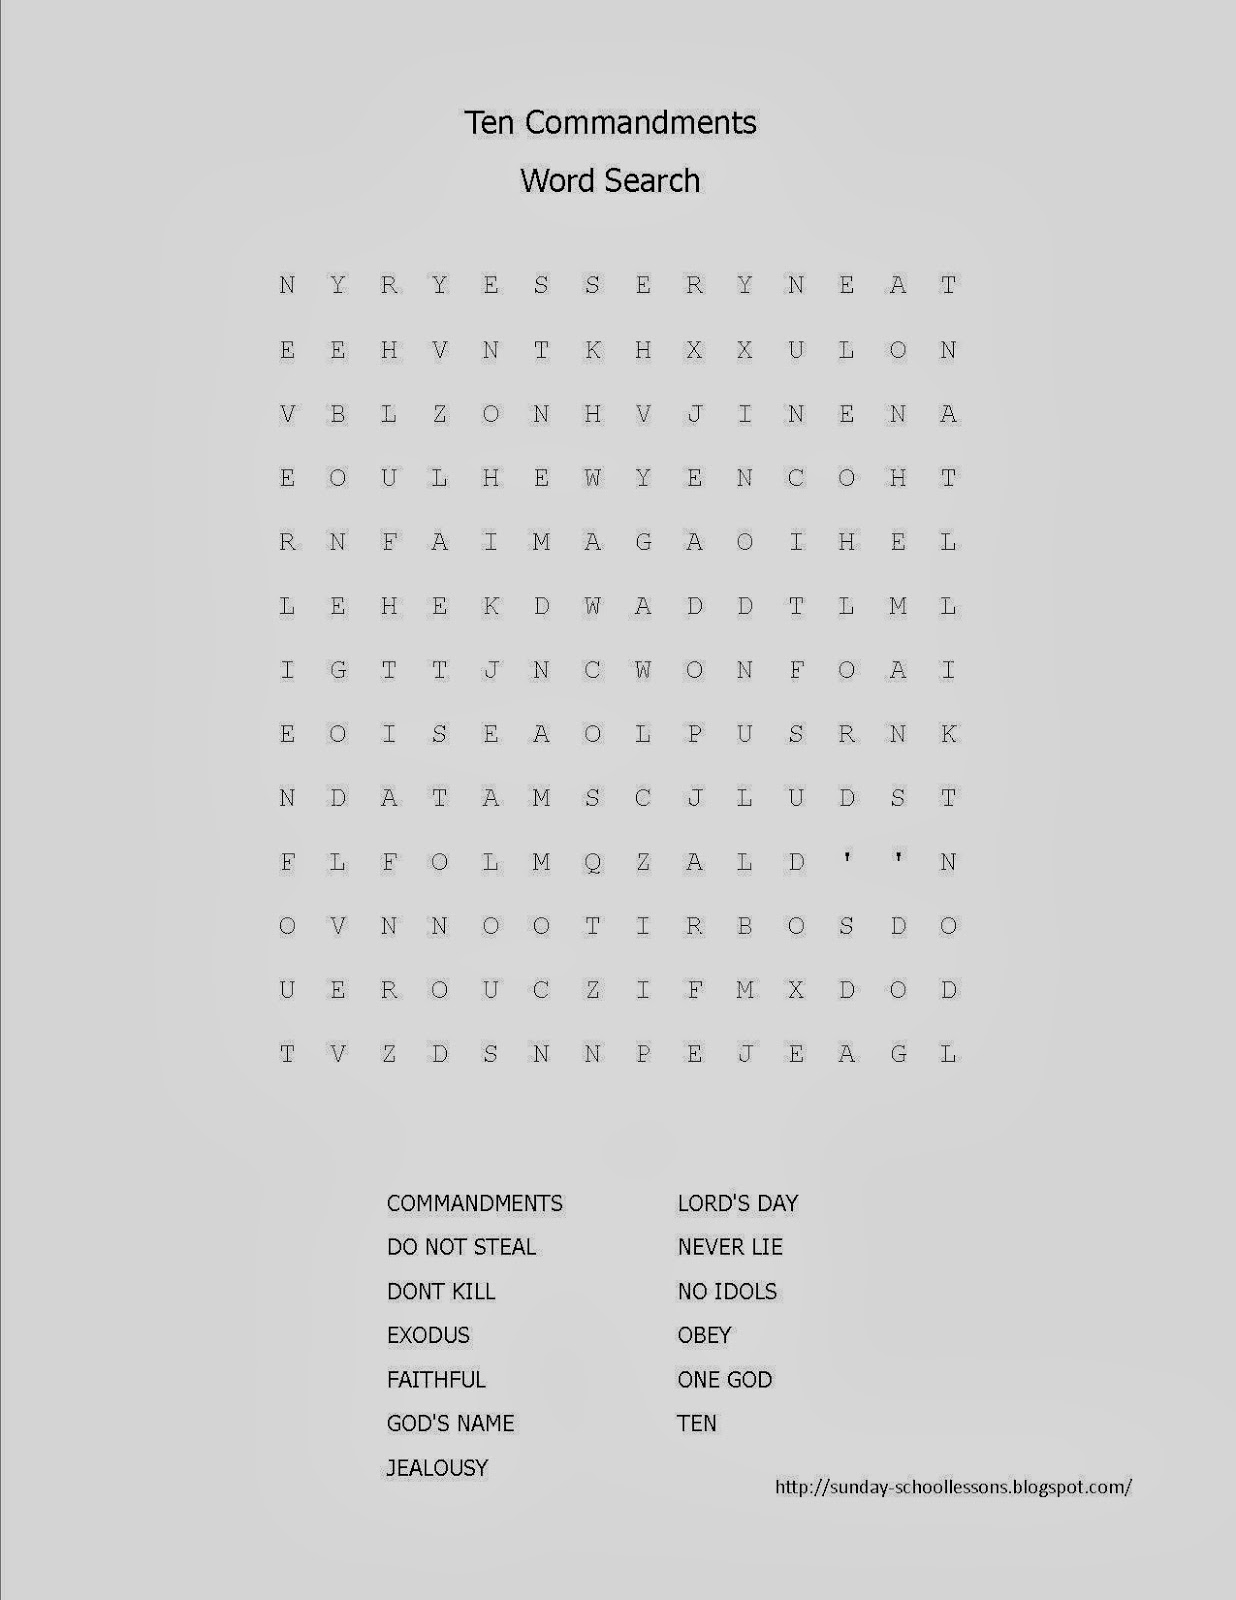 Get the 10 Commandments · Word Search Puzzle